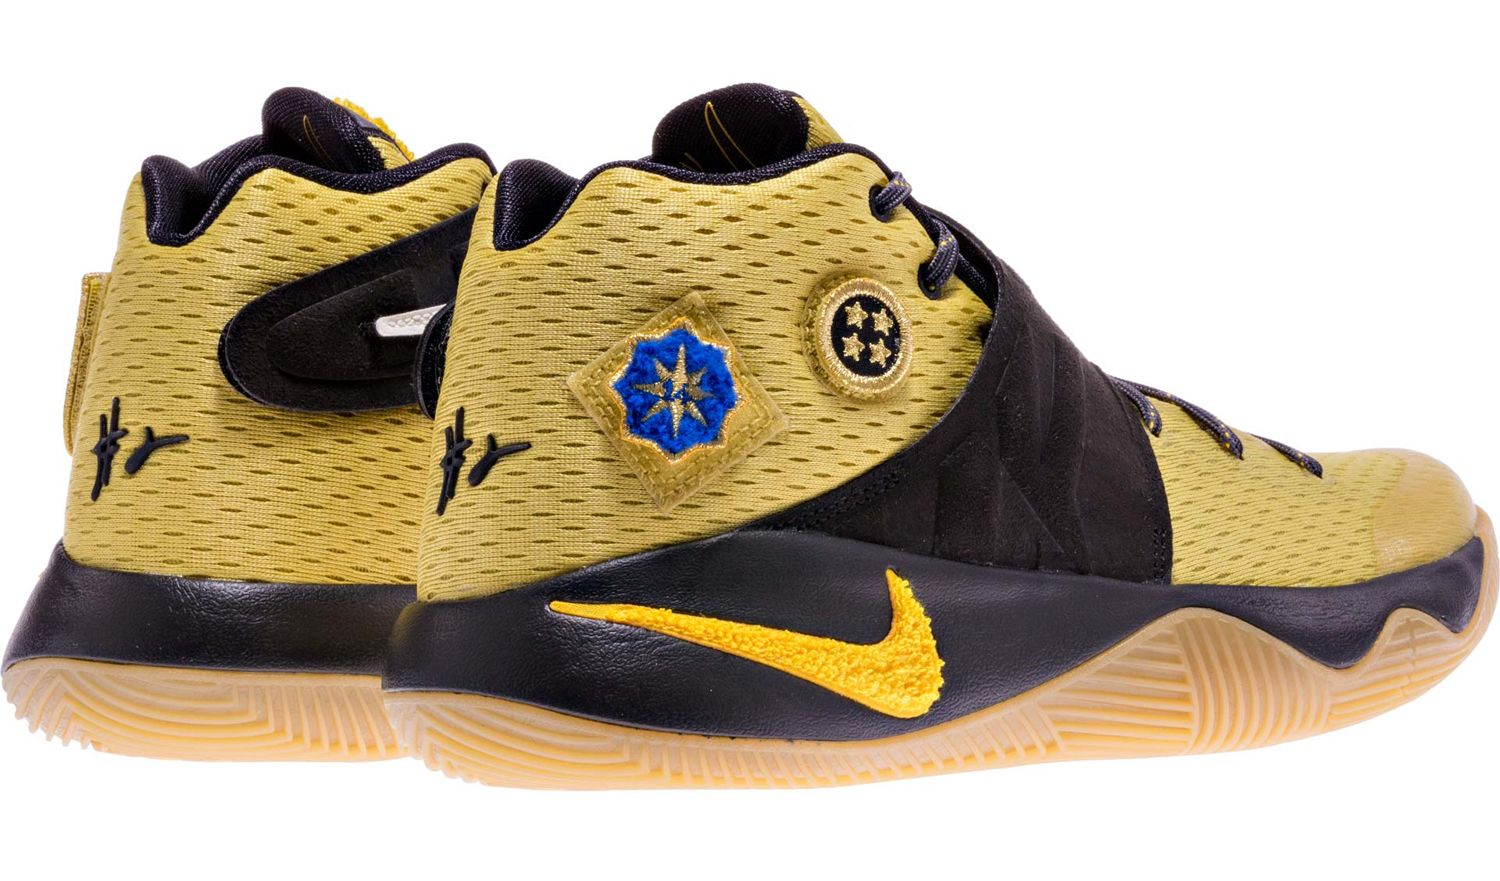 Kyrie Irving's Not an All-Star, But His All-Star Nike Shoe Just